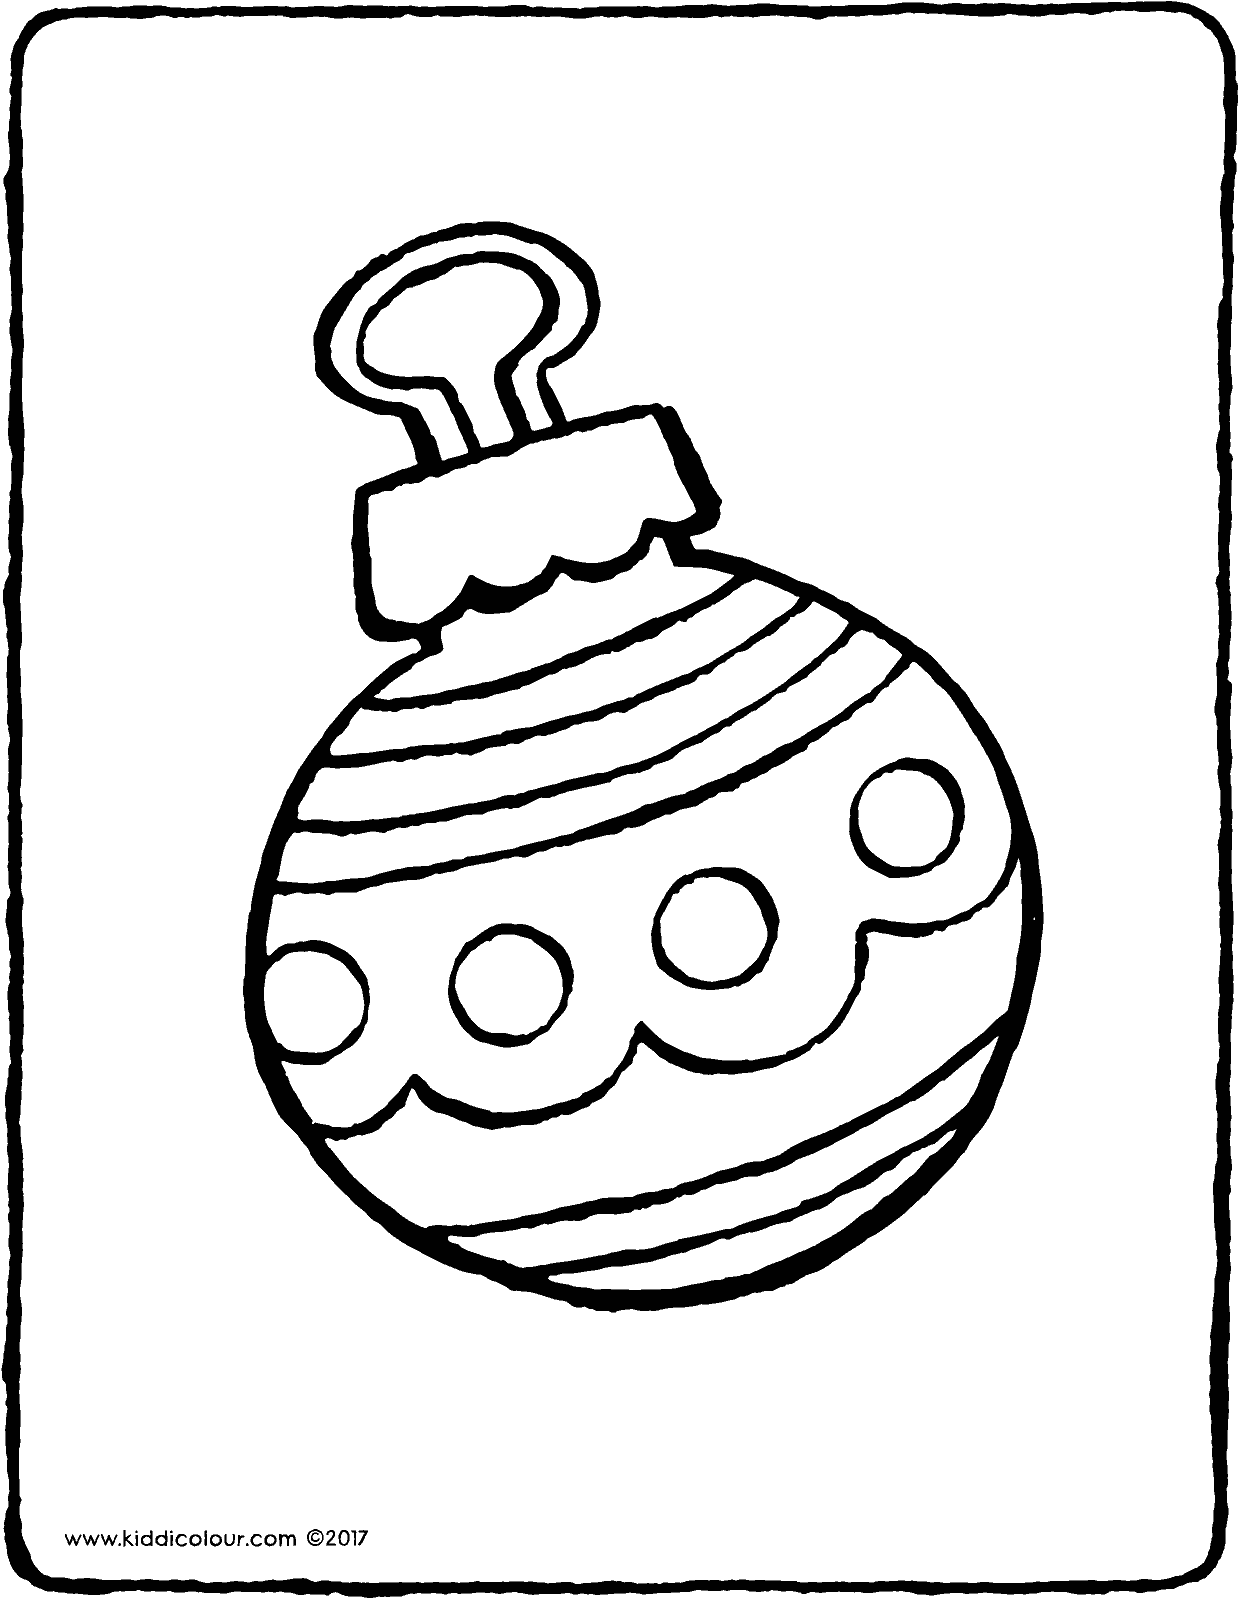 christmas baubles colouring pages christmas bauble kiddicolour christmas colouring pages baubles